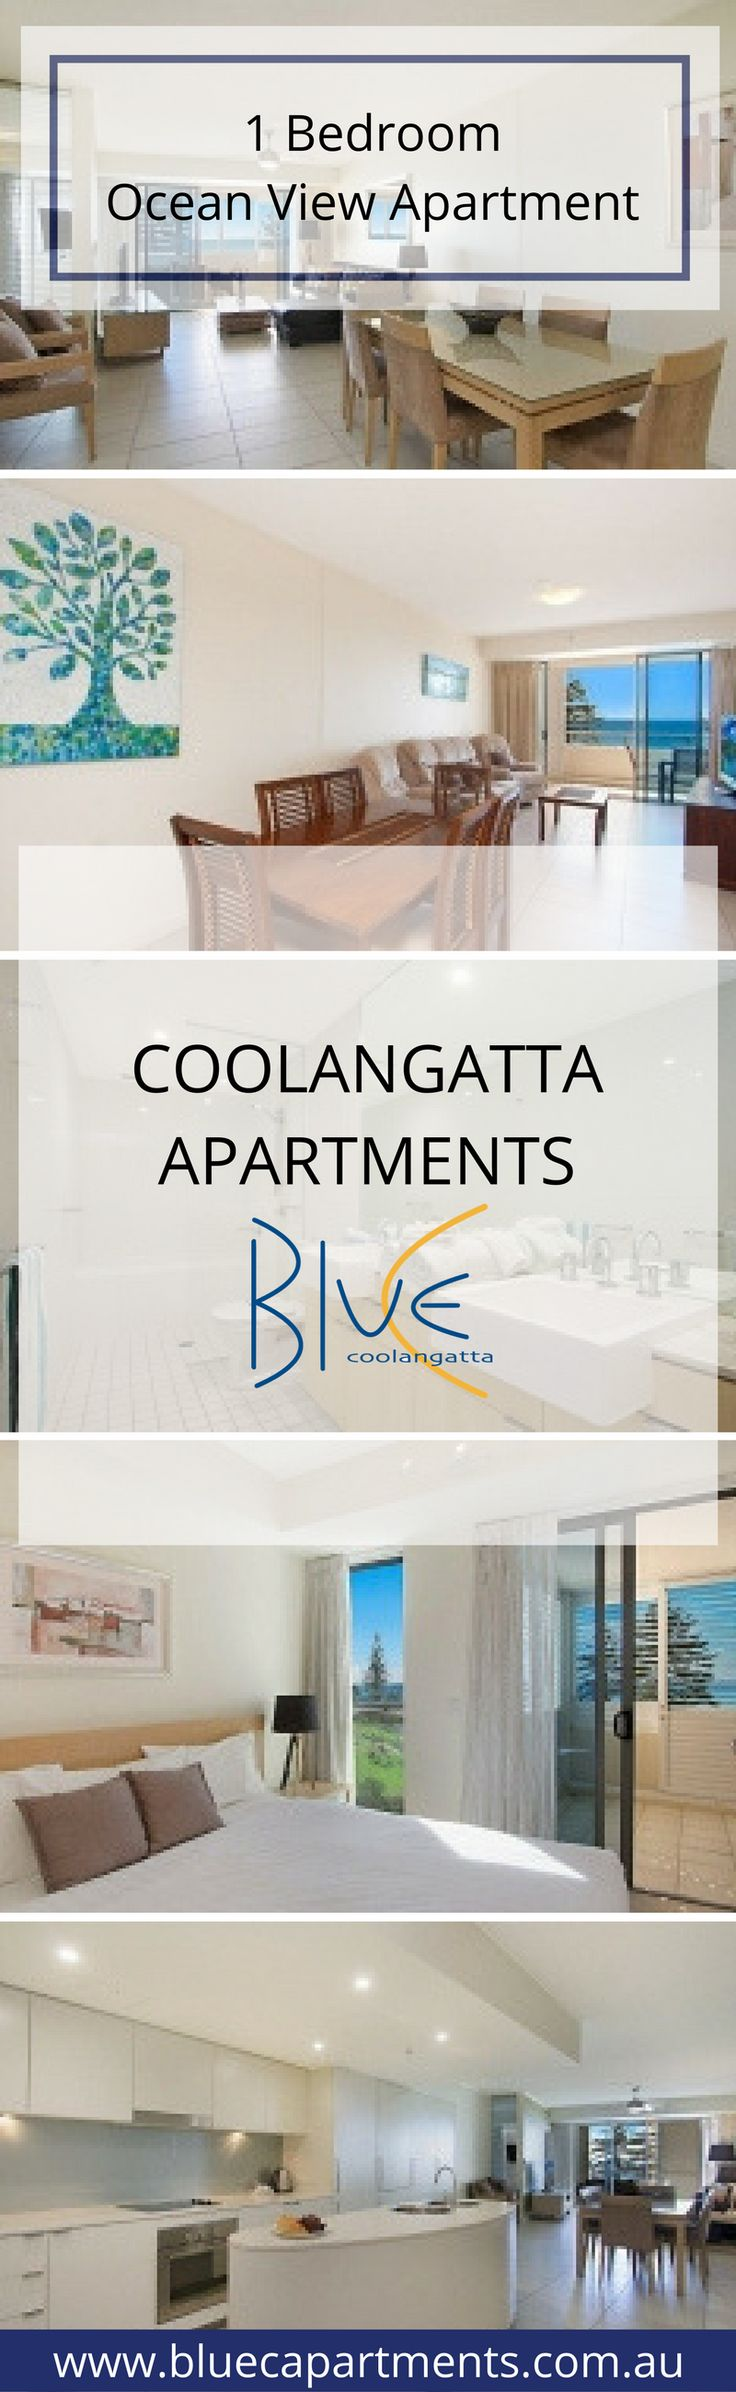 Explore more at http://bluecapartments.com.au/1-bedroom-apartment-coolangatta/